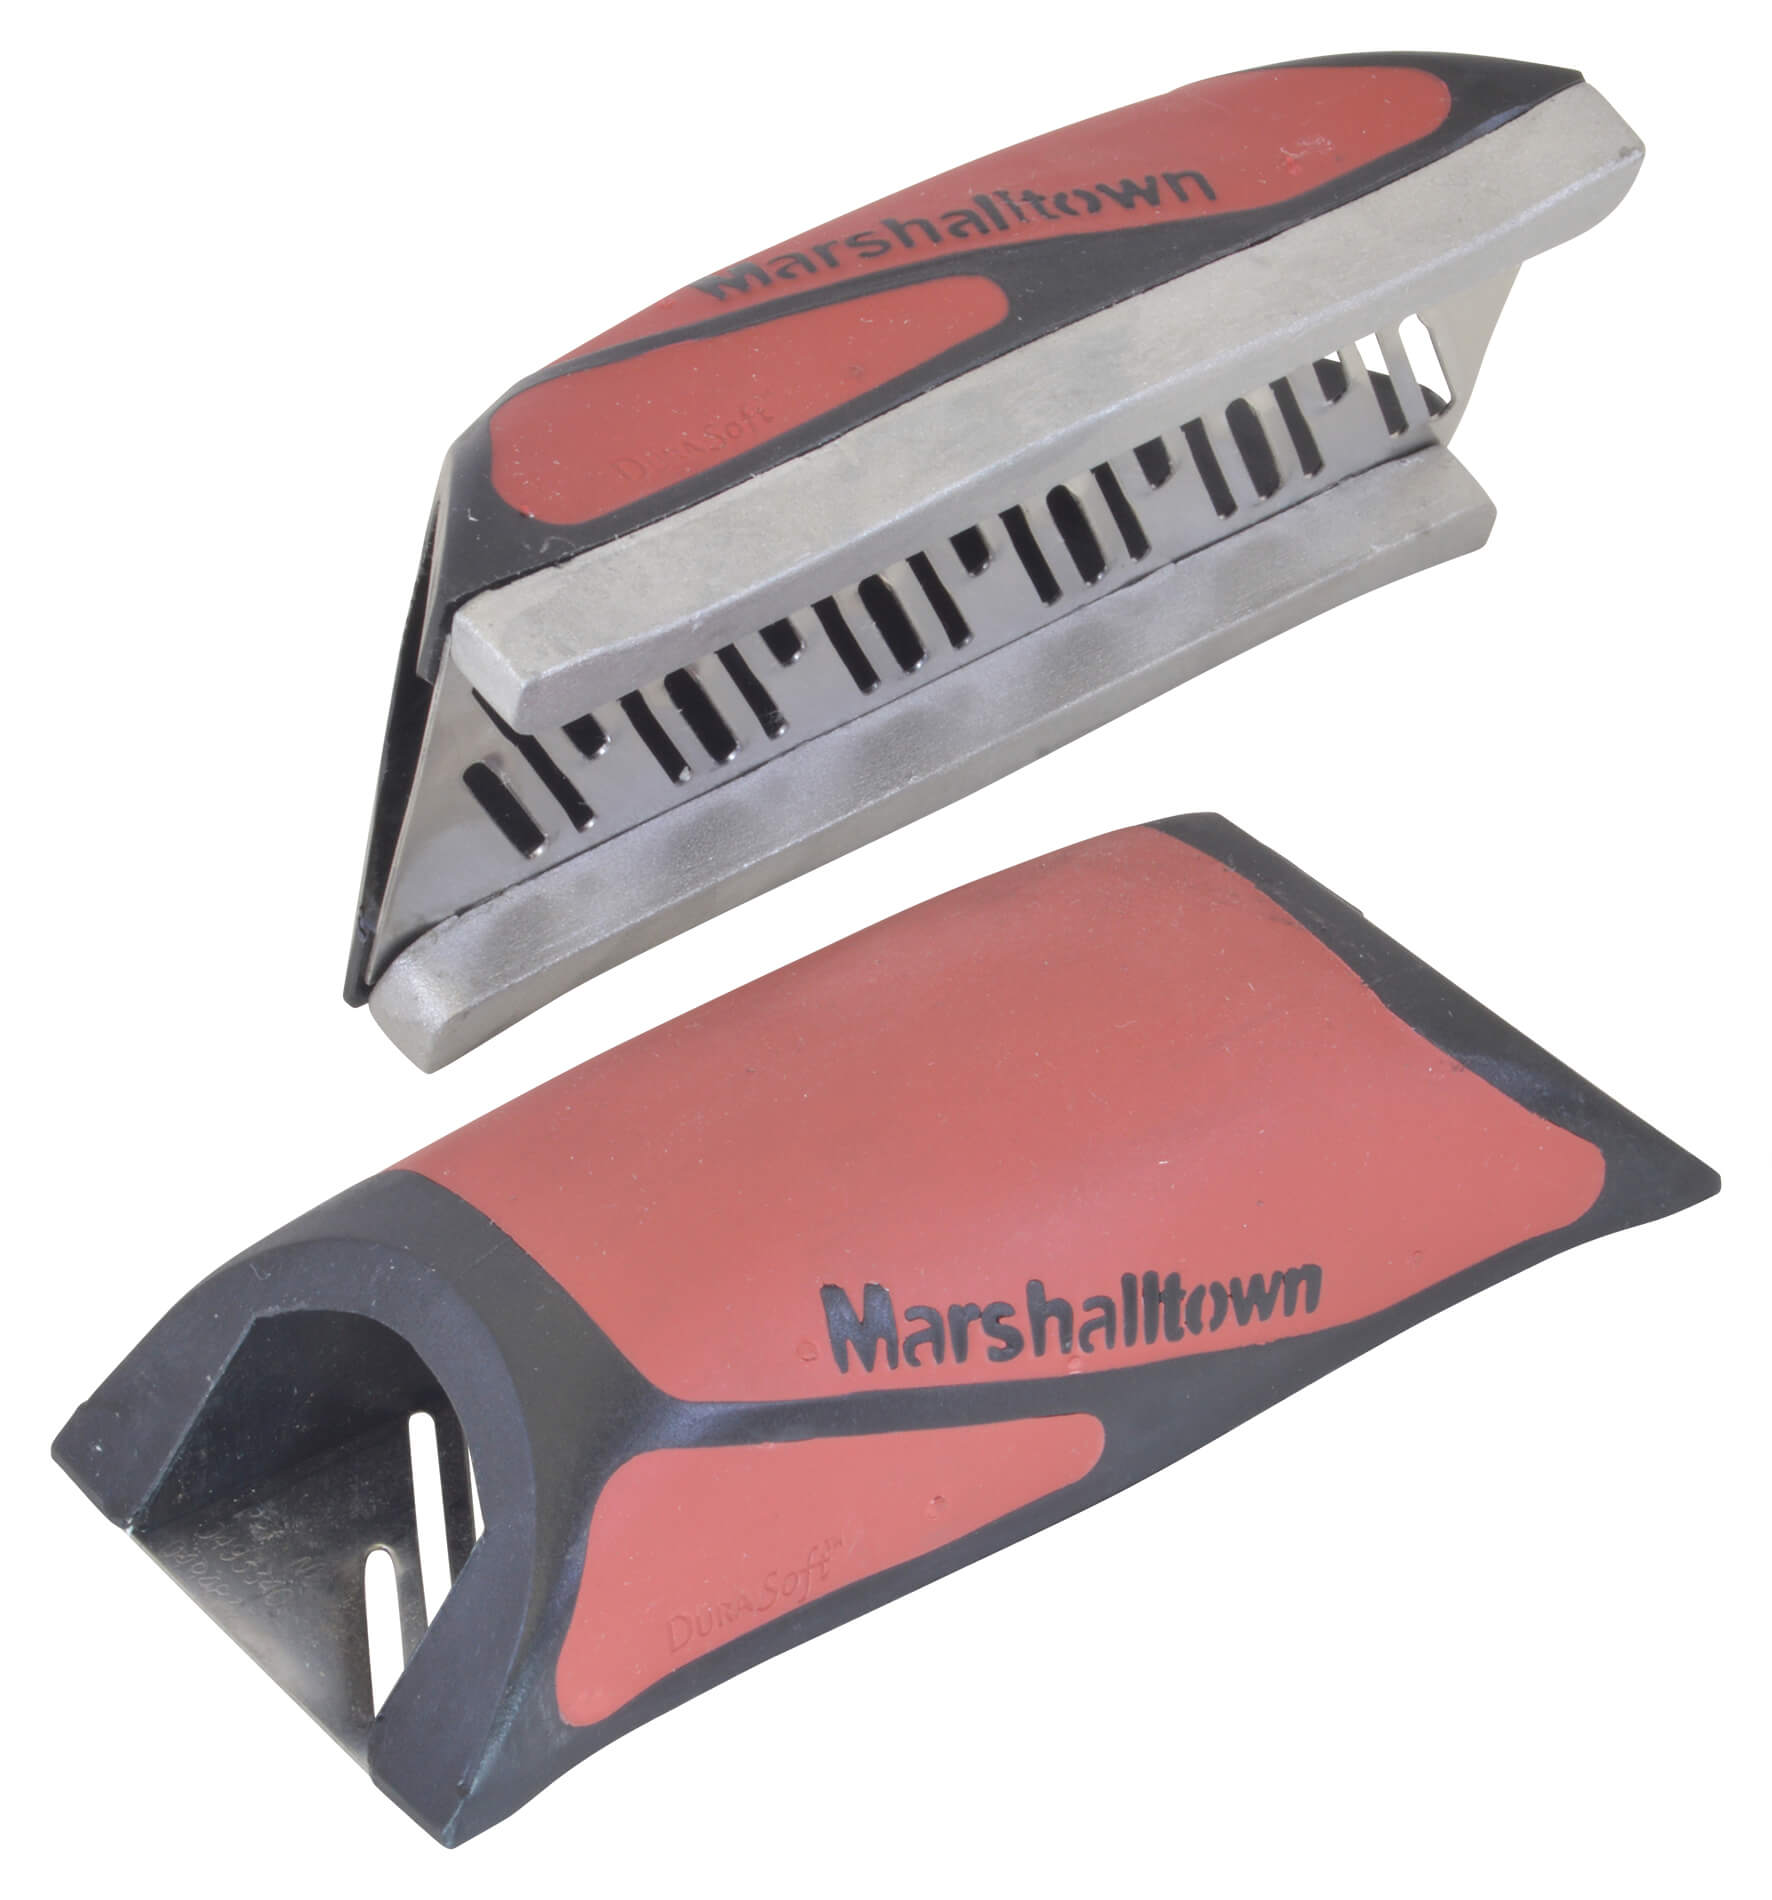 Marshalltown DR390 Drywall Rasp without Guide Rail